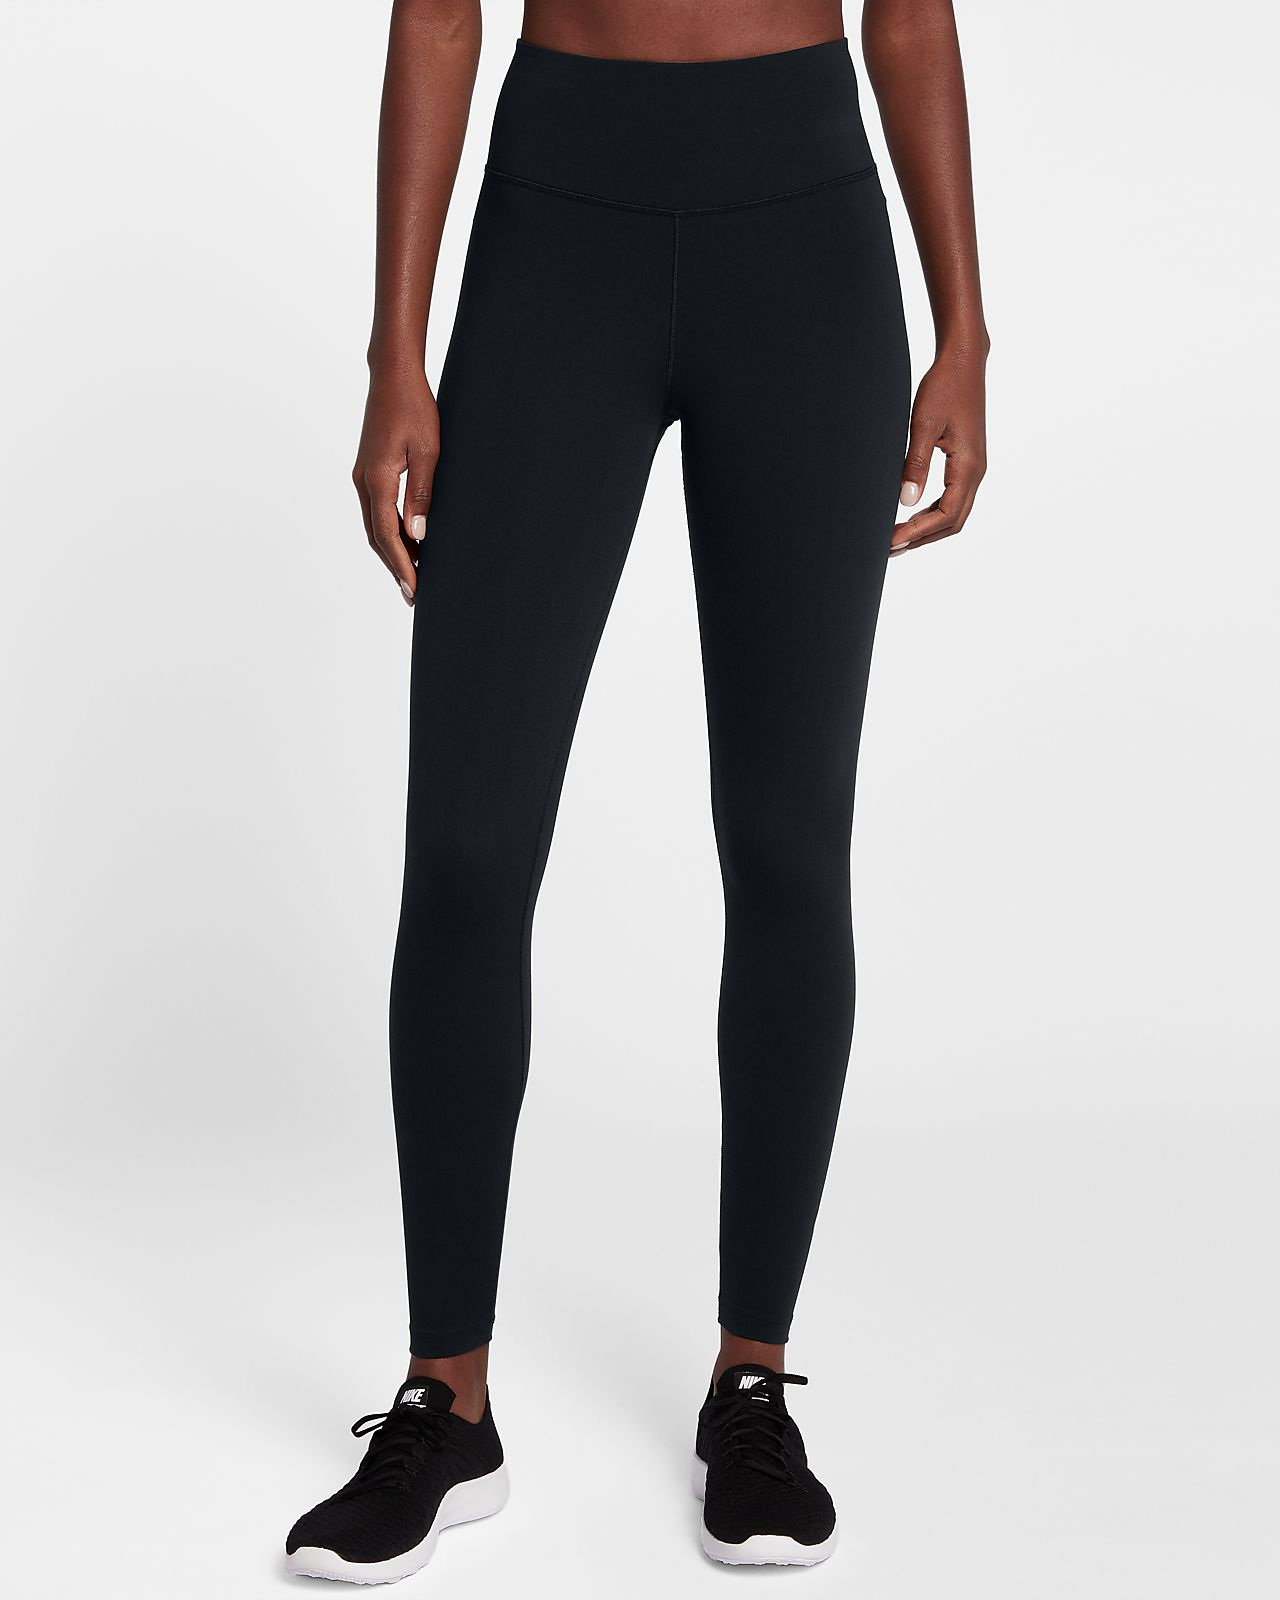 4f58705eb2387a Nike Sculpt Lux Women's High-Waist Training Tights. Nike.com IE